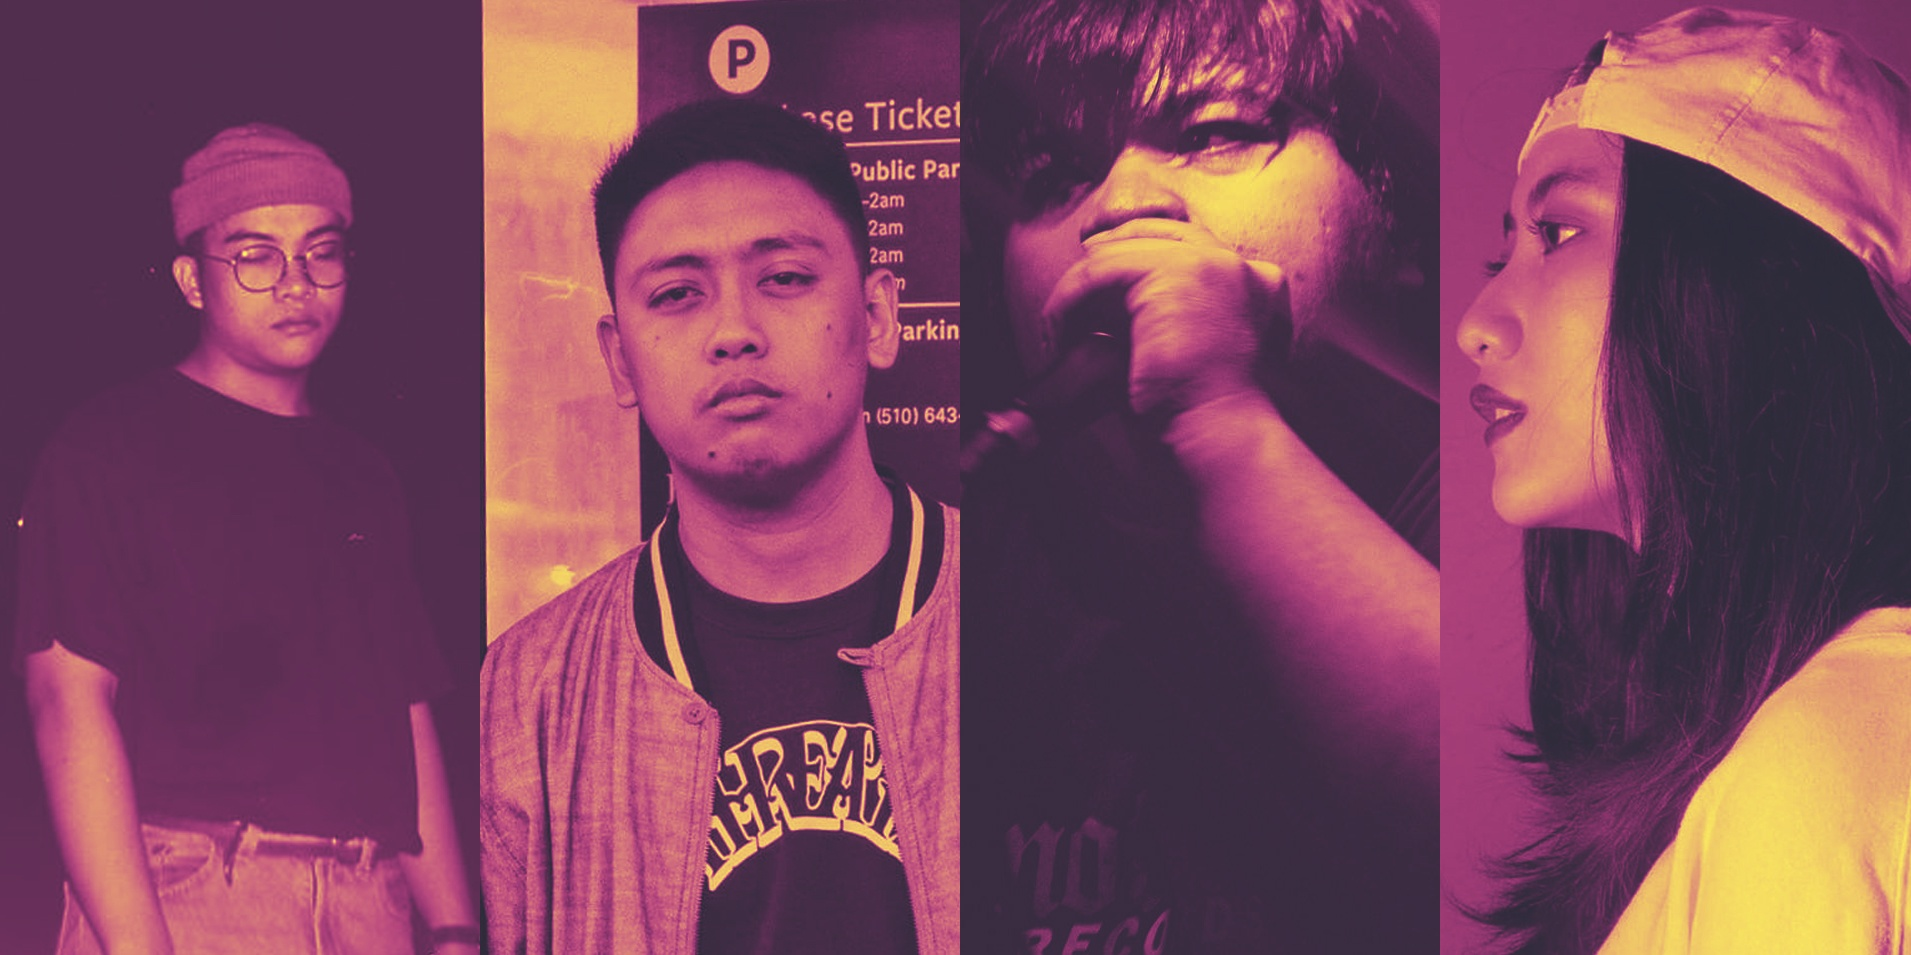 BABYBLUE, BLKD X Calix, BP Valenzuela, and more to perform at The Rest Is Noise 34